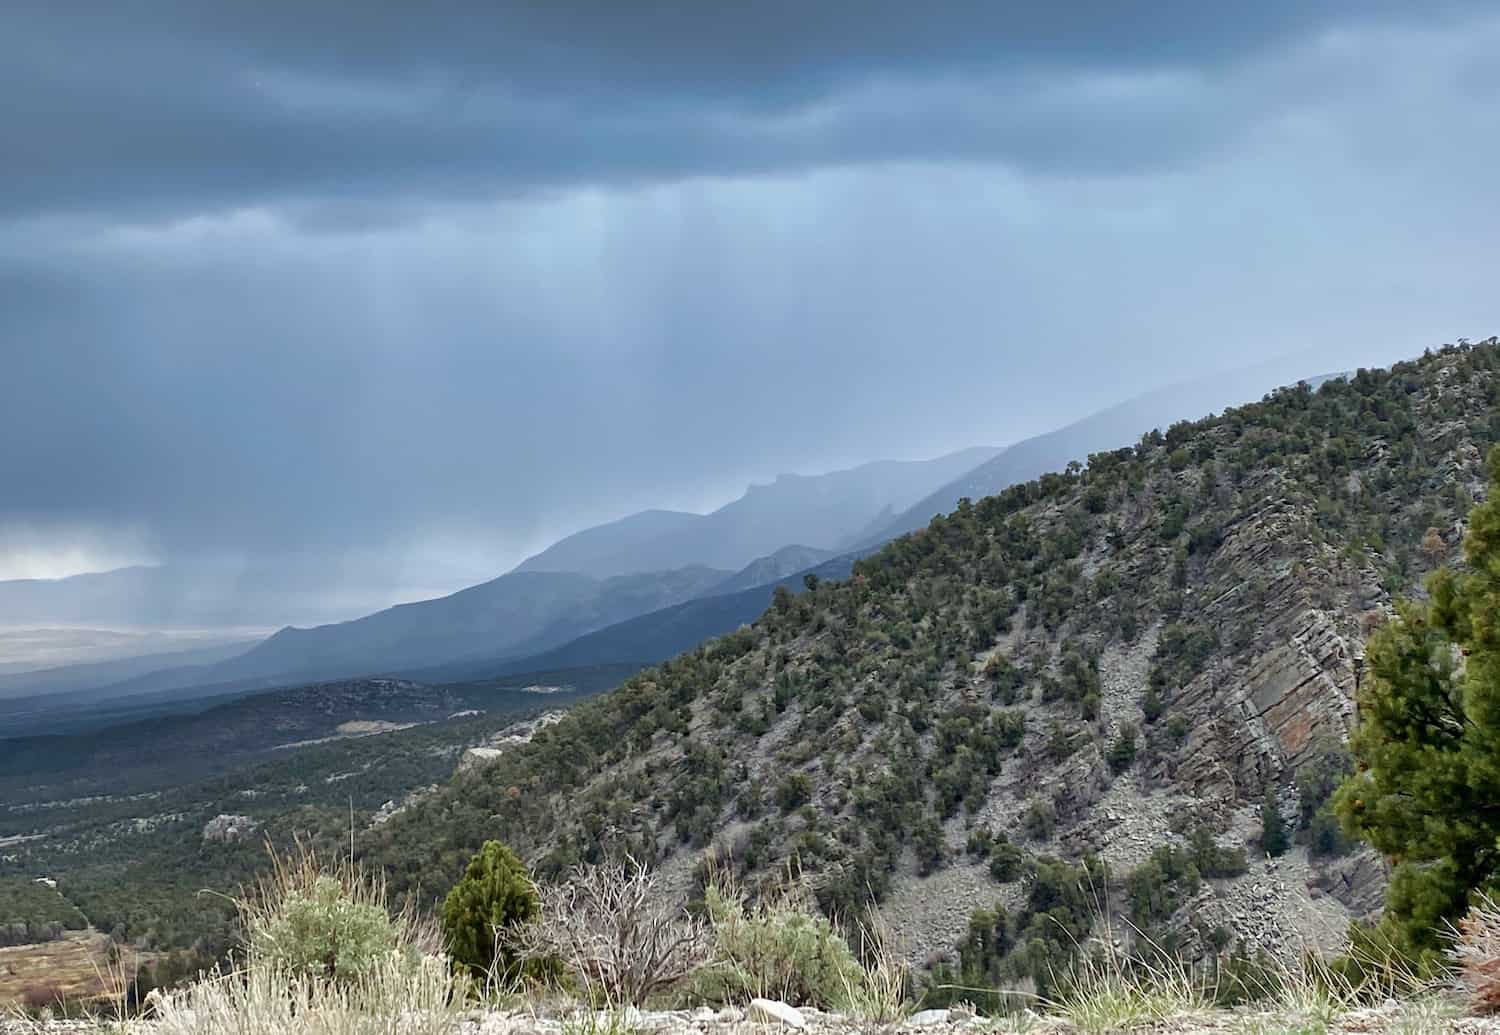 One Day in Great Basin - Rain on the Hills of Snake Range